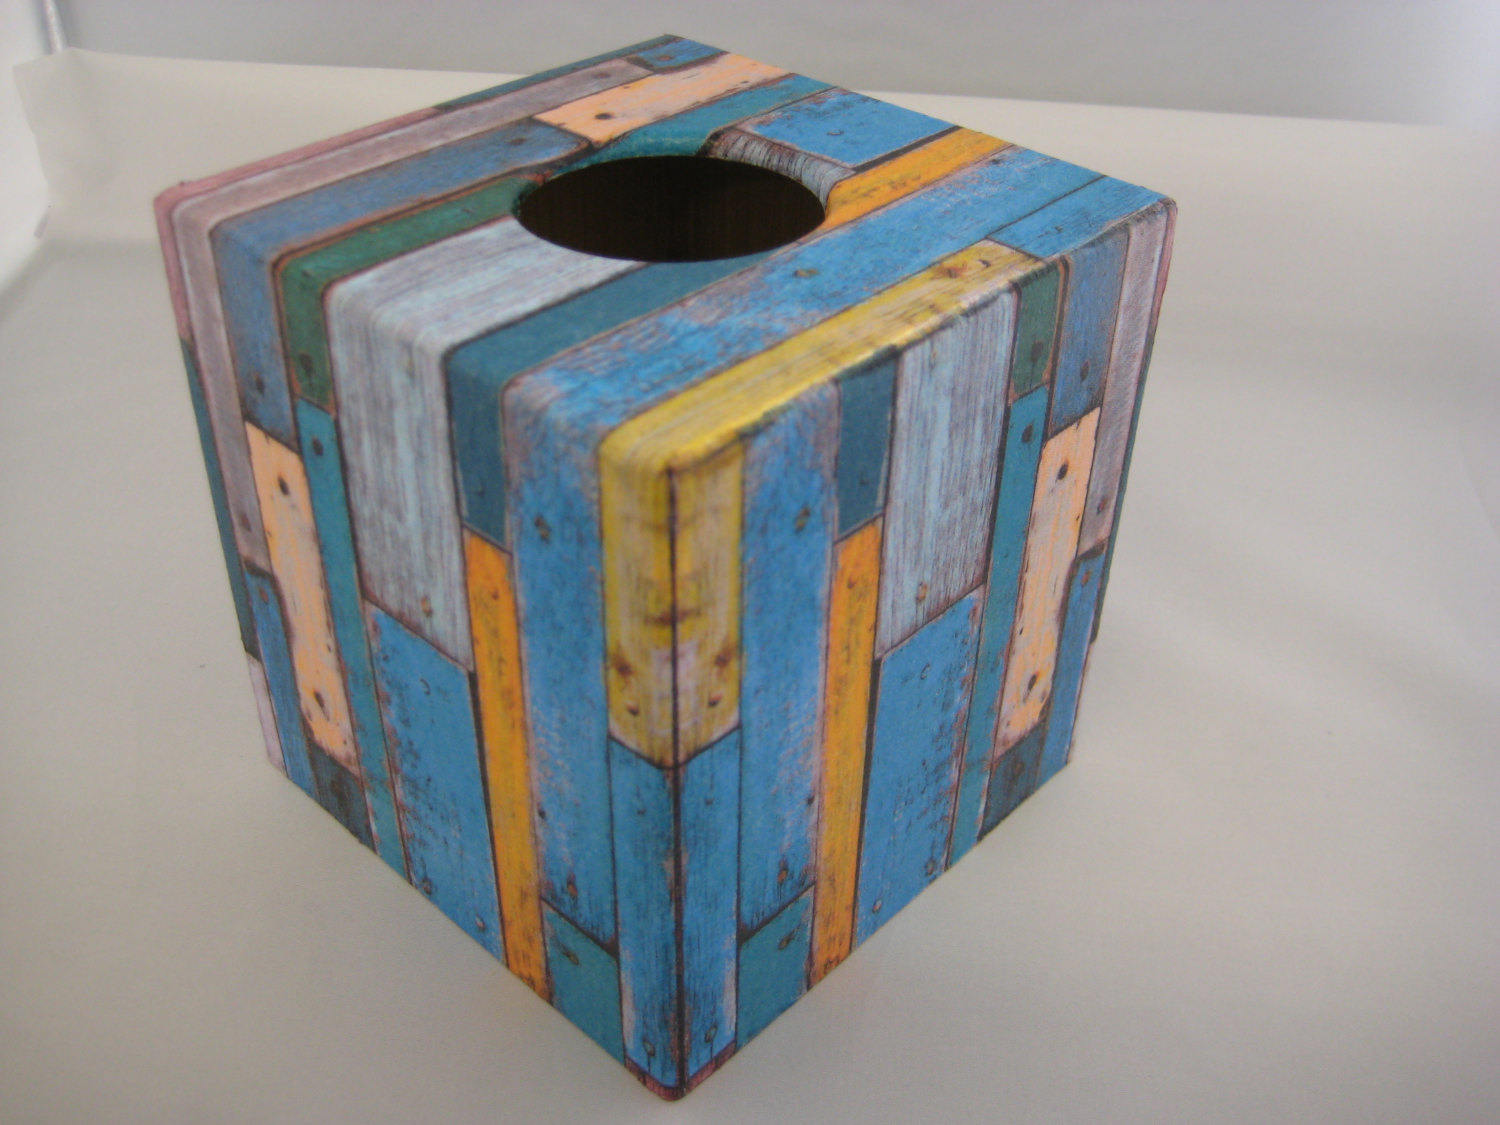 Vintage Wood Tissue Box Cover - Handmade